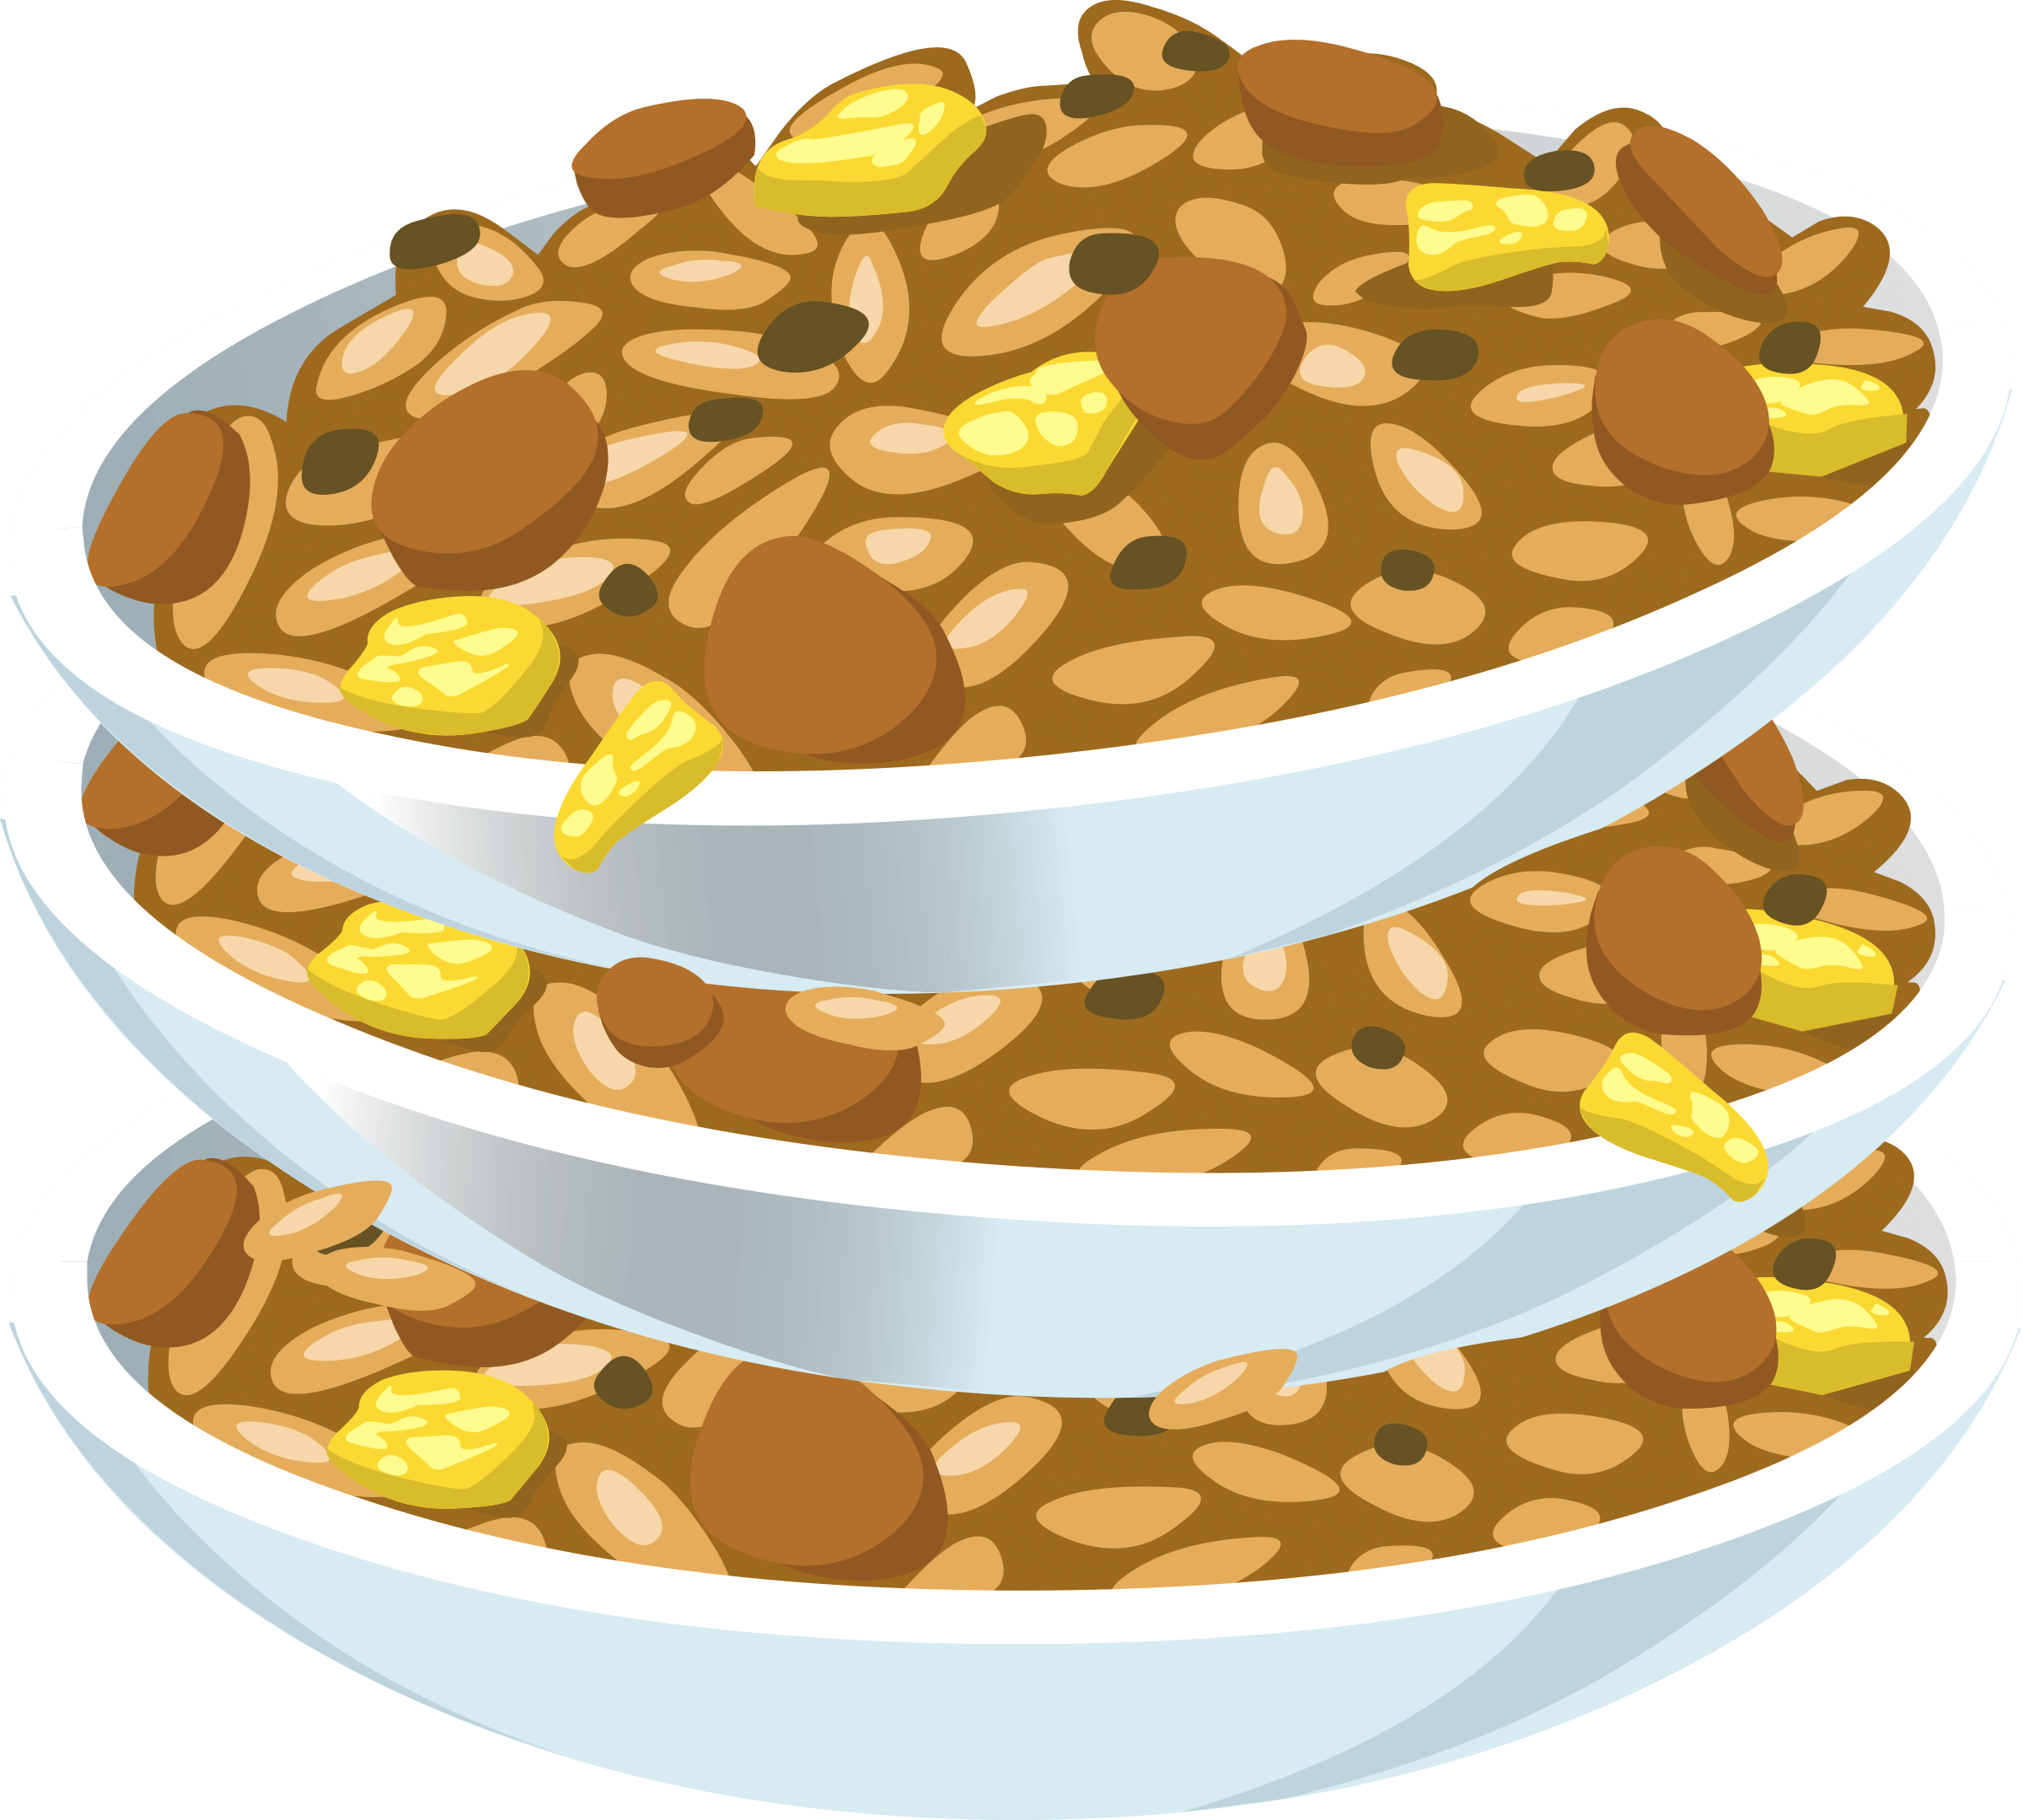 Beans clipart nuts. Fried cliparts zone